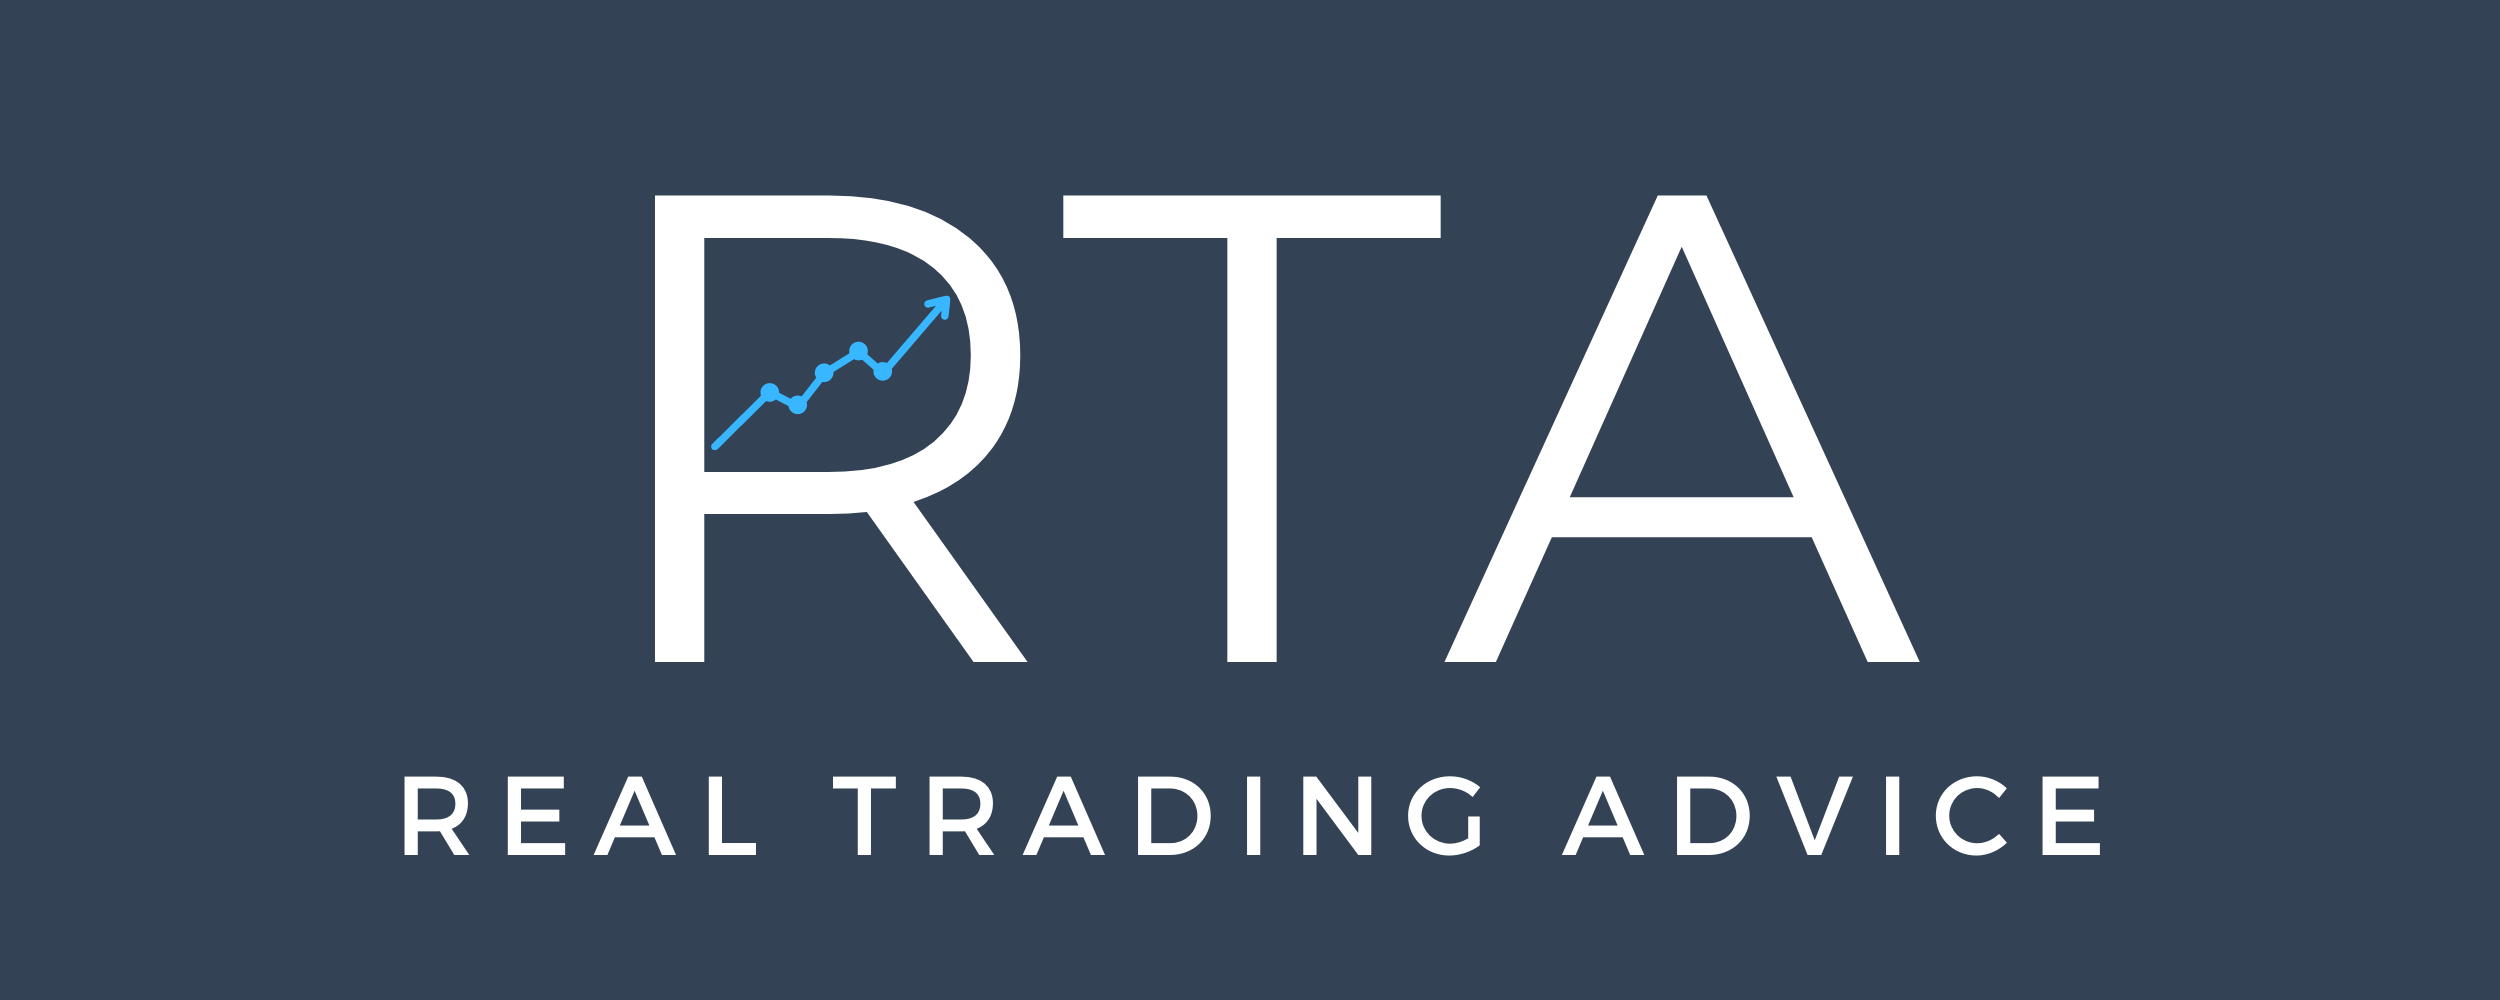 Real Trading Advice